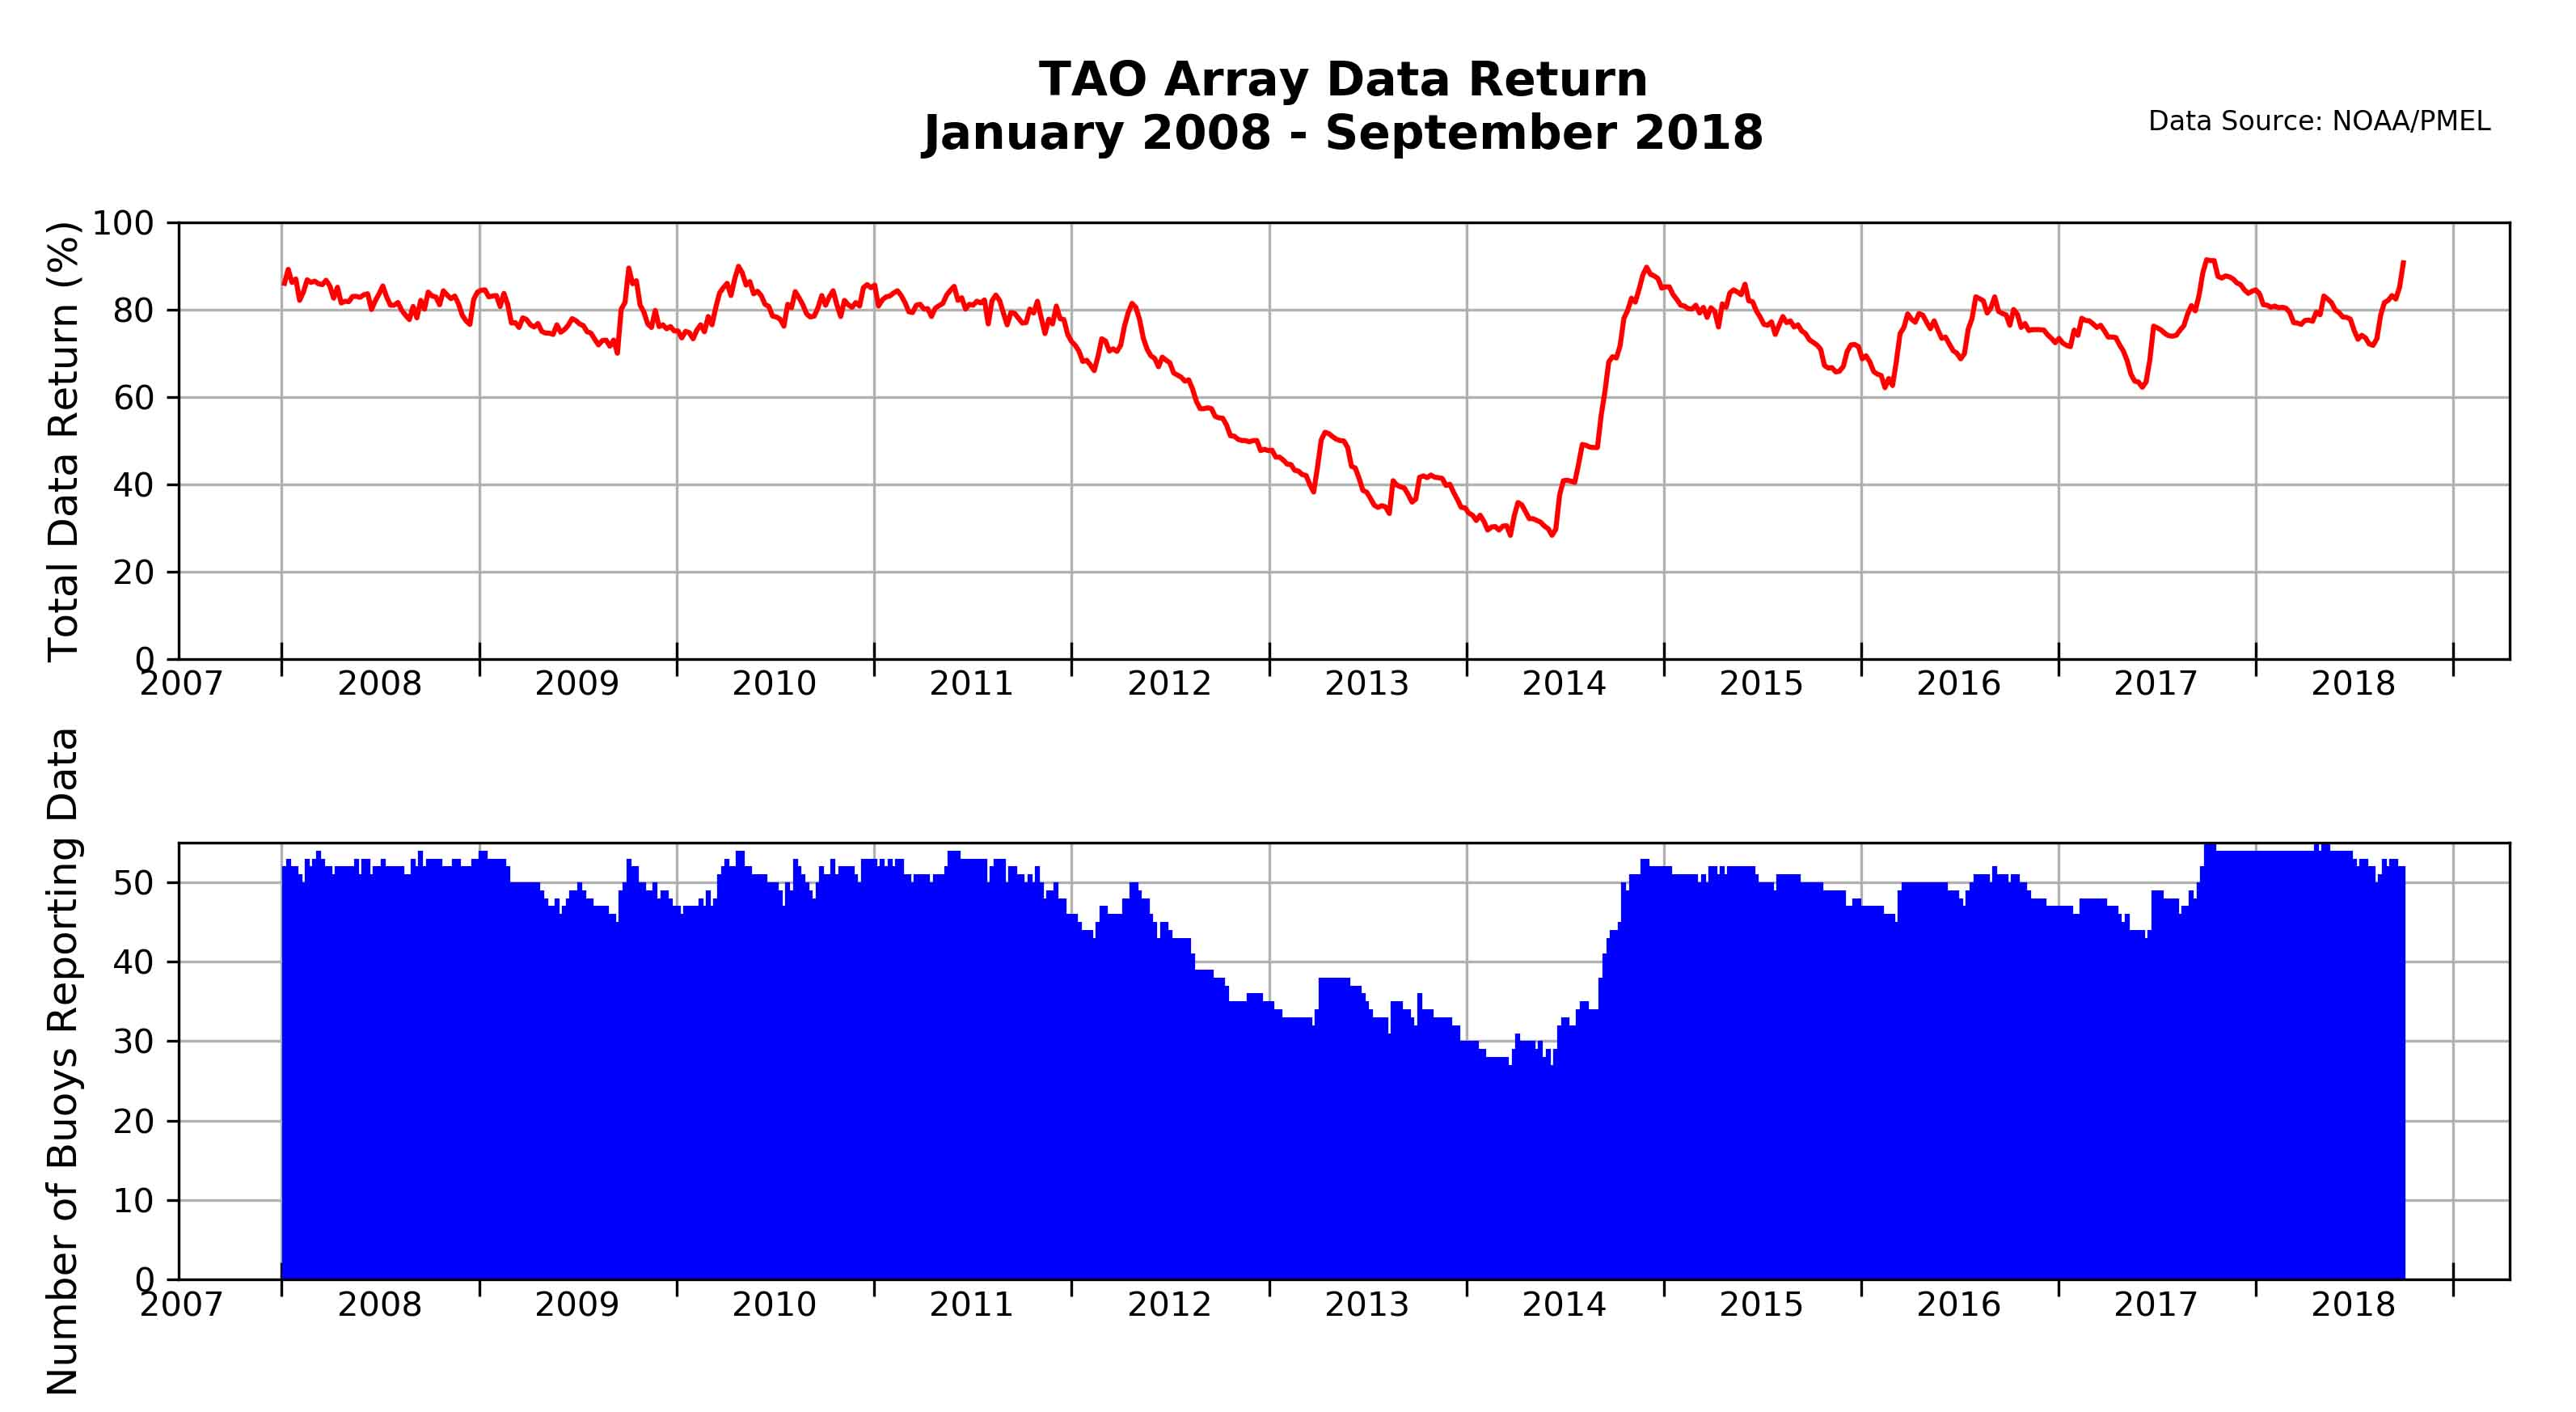 Historic TAO Data Return